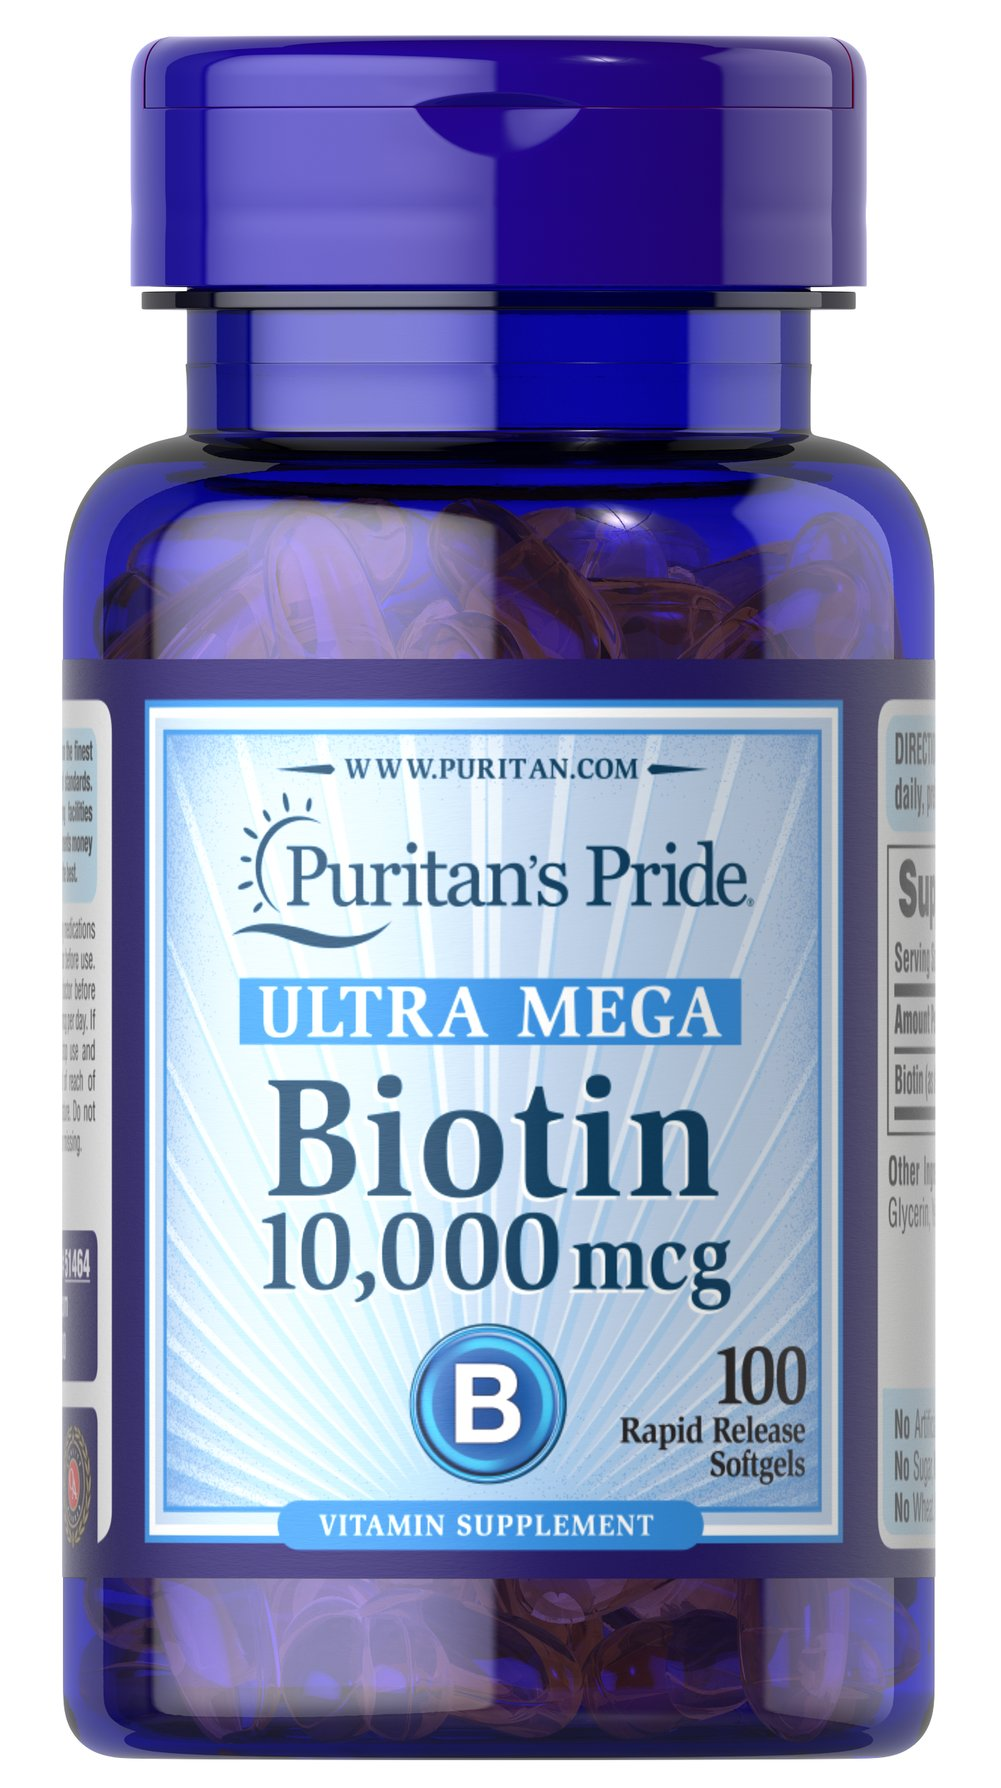 Biotin 10,000 mcg <p>Helps promote skin, hair and nail health.**</p> <p>Assists protein and fat metabolism for energy use.**</p> <p>Rapid release softgels.</p> <p>Biotin helps promote skin, hair and nail health so you can look and feel your best.** Just one Ultra Mega Biotin softgel provides 10,000mcg of Biotin, also known to assist in protein and fat metabolism for energy use.** Includes 50 rapid release softgels.</p>  100 Softgels 10000 mcg $19.9